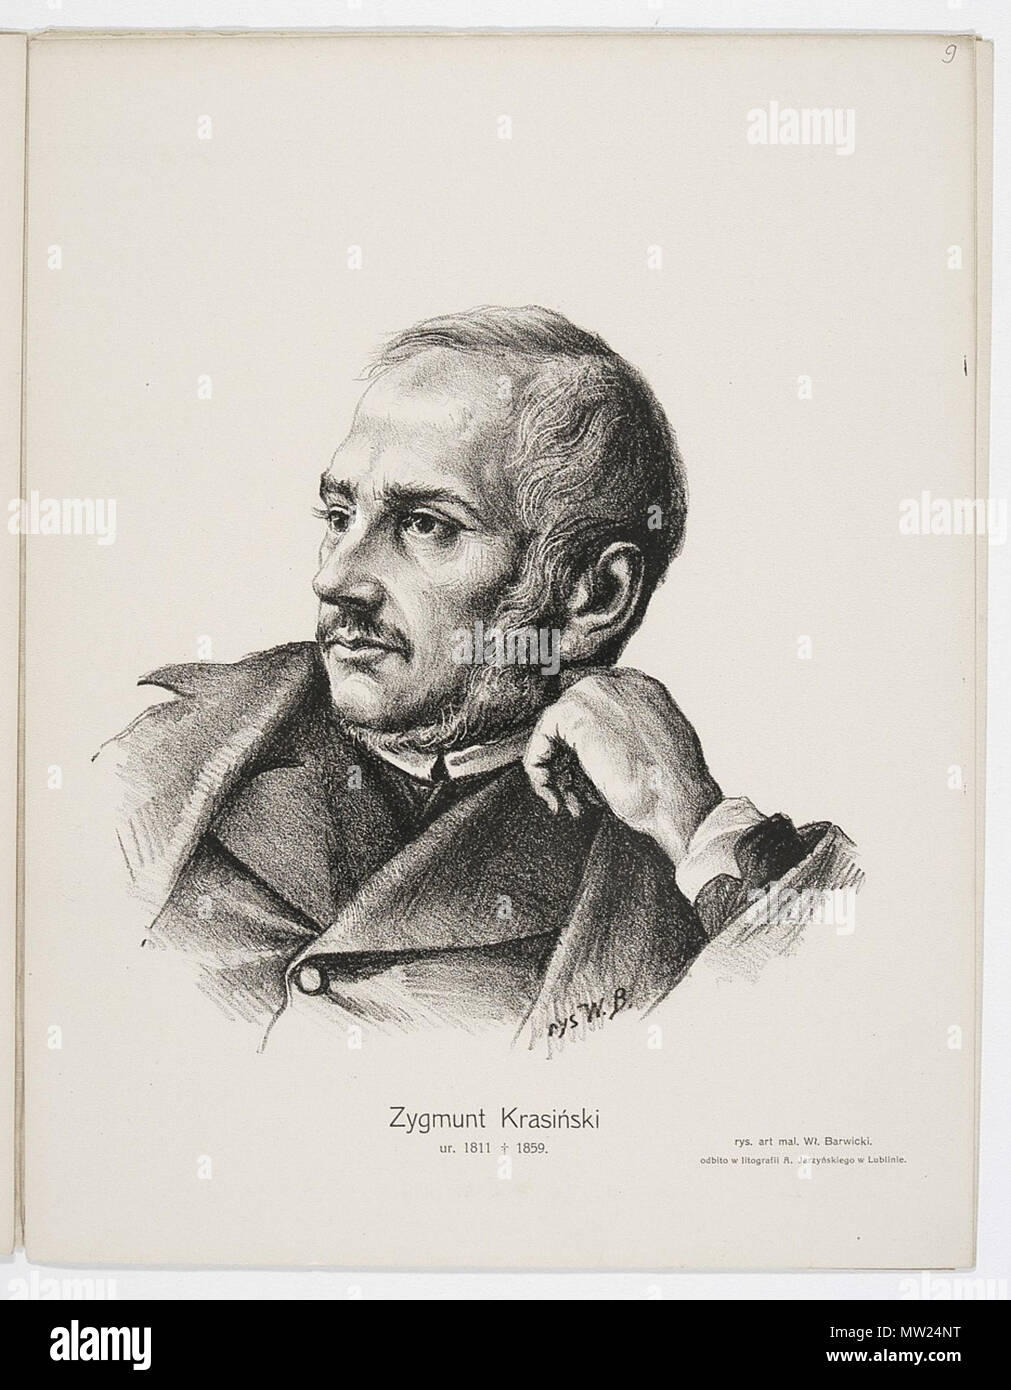 . Zygmunt Krasiński - a portrait from CBN Polona .   Władysław Barwicki      Description Polish painter, sculptor and poet  Authority control  : Q18508749 VIAF: 102259113 663 Zygmunt Krasinski by Barwicki Stock Photo